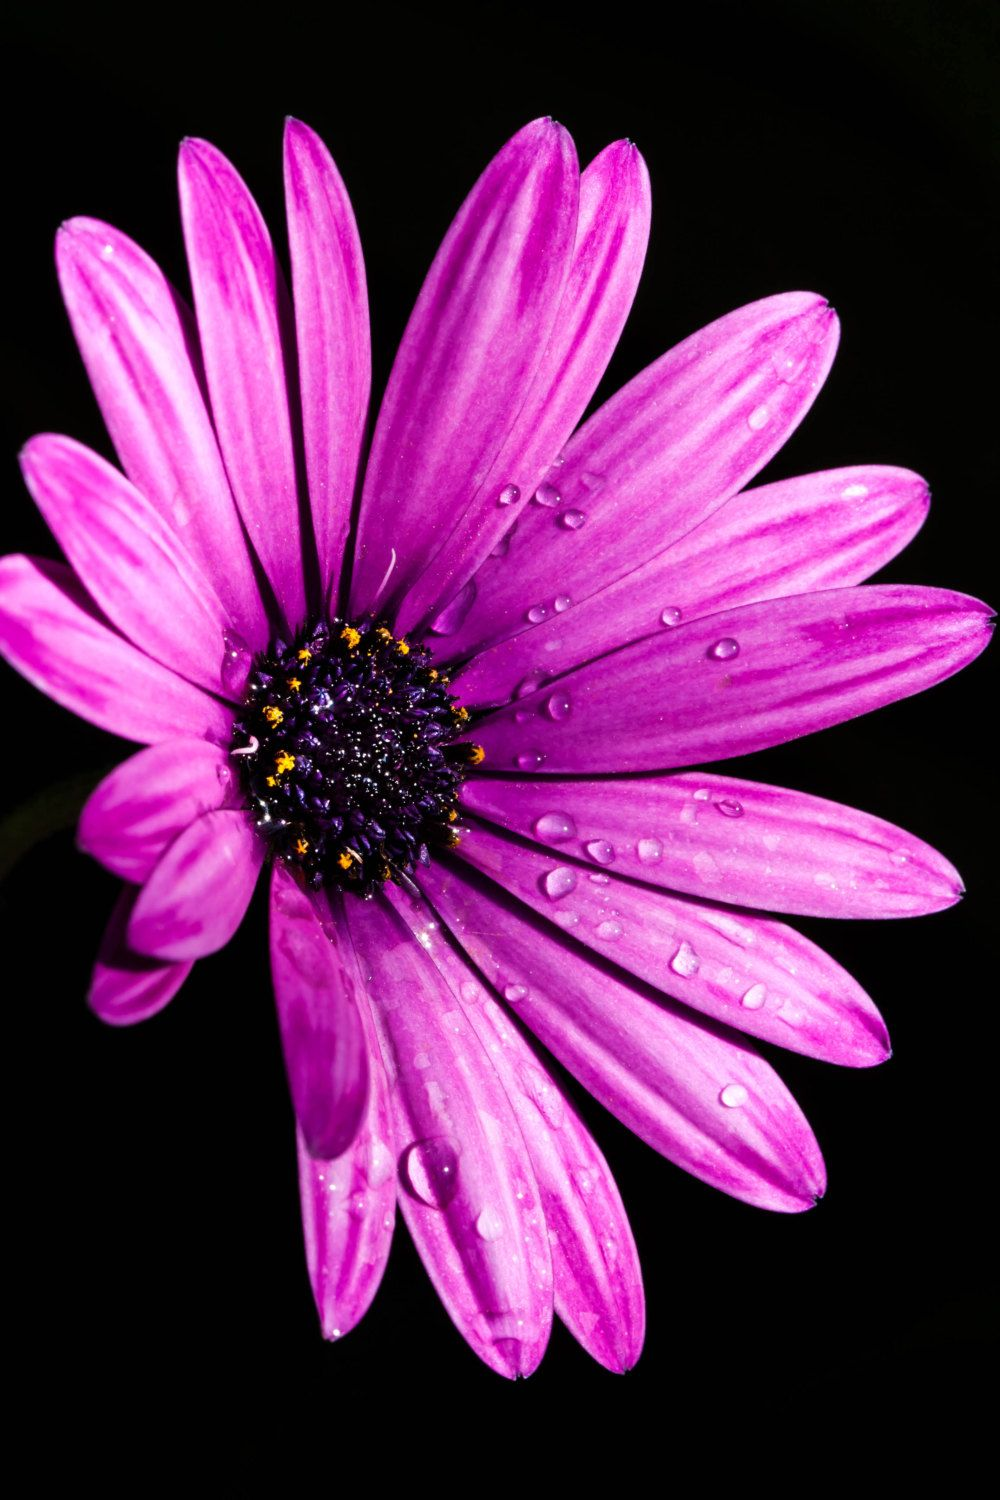 Purple daisy flower photography floral nature photography 8x10 8x12 purple daisy flower photography floral nature bkphillipsart izmirmasajfo